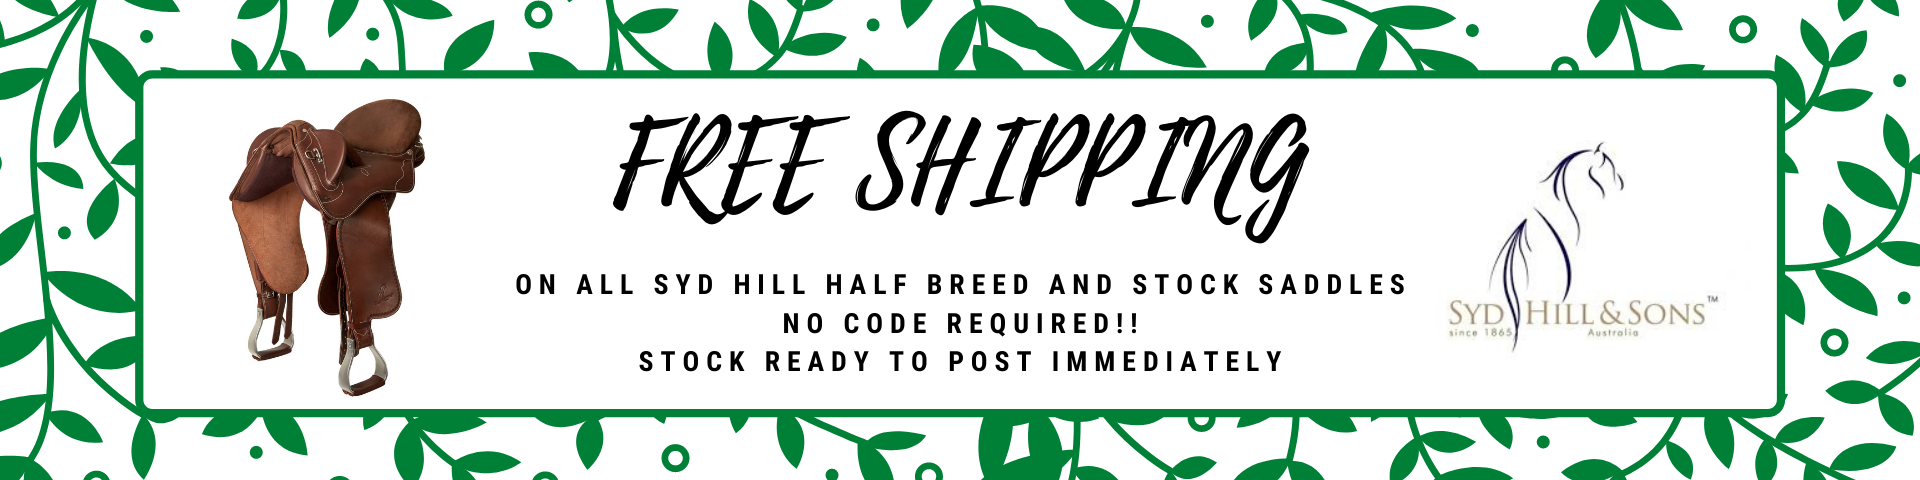 freeshippingsydhill.png